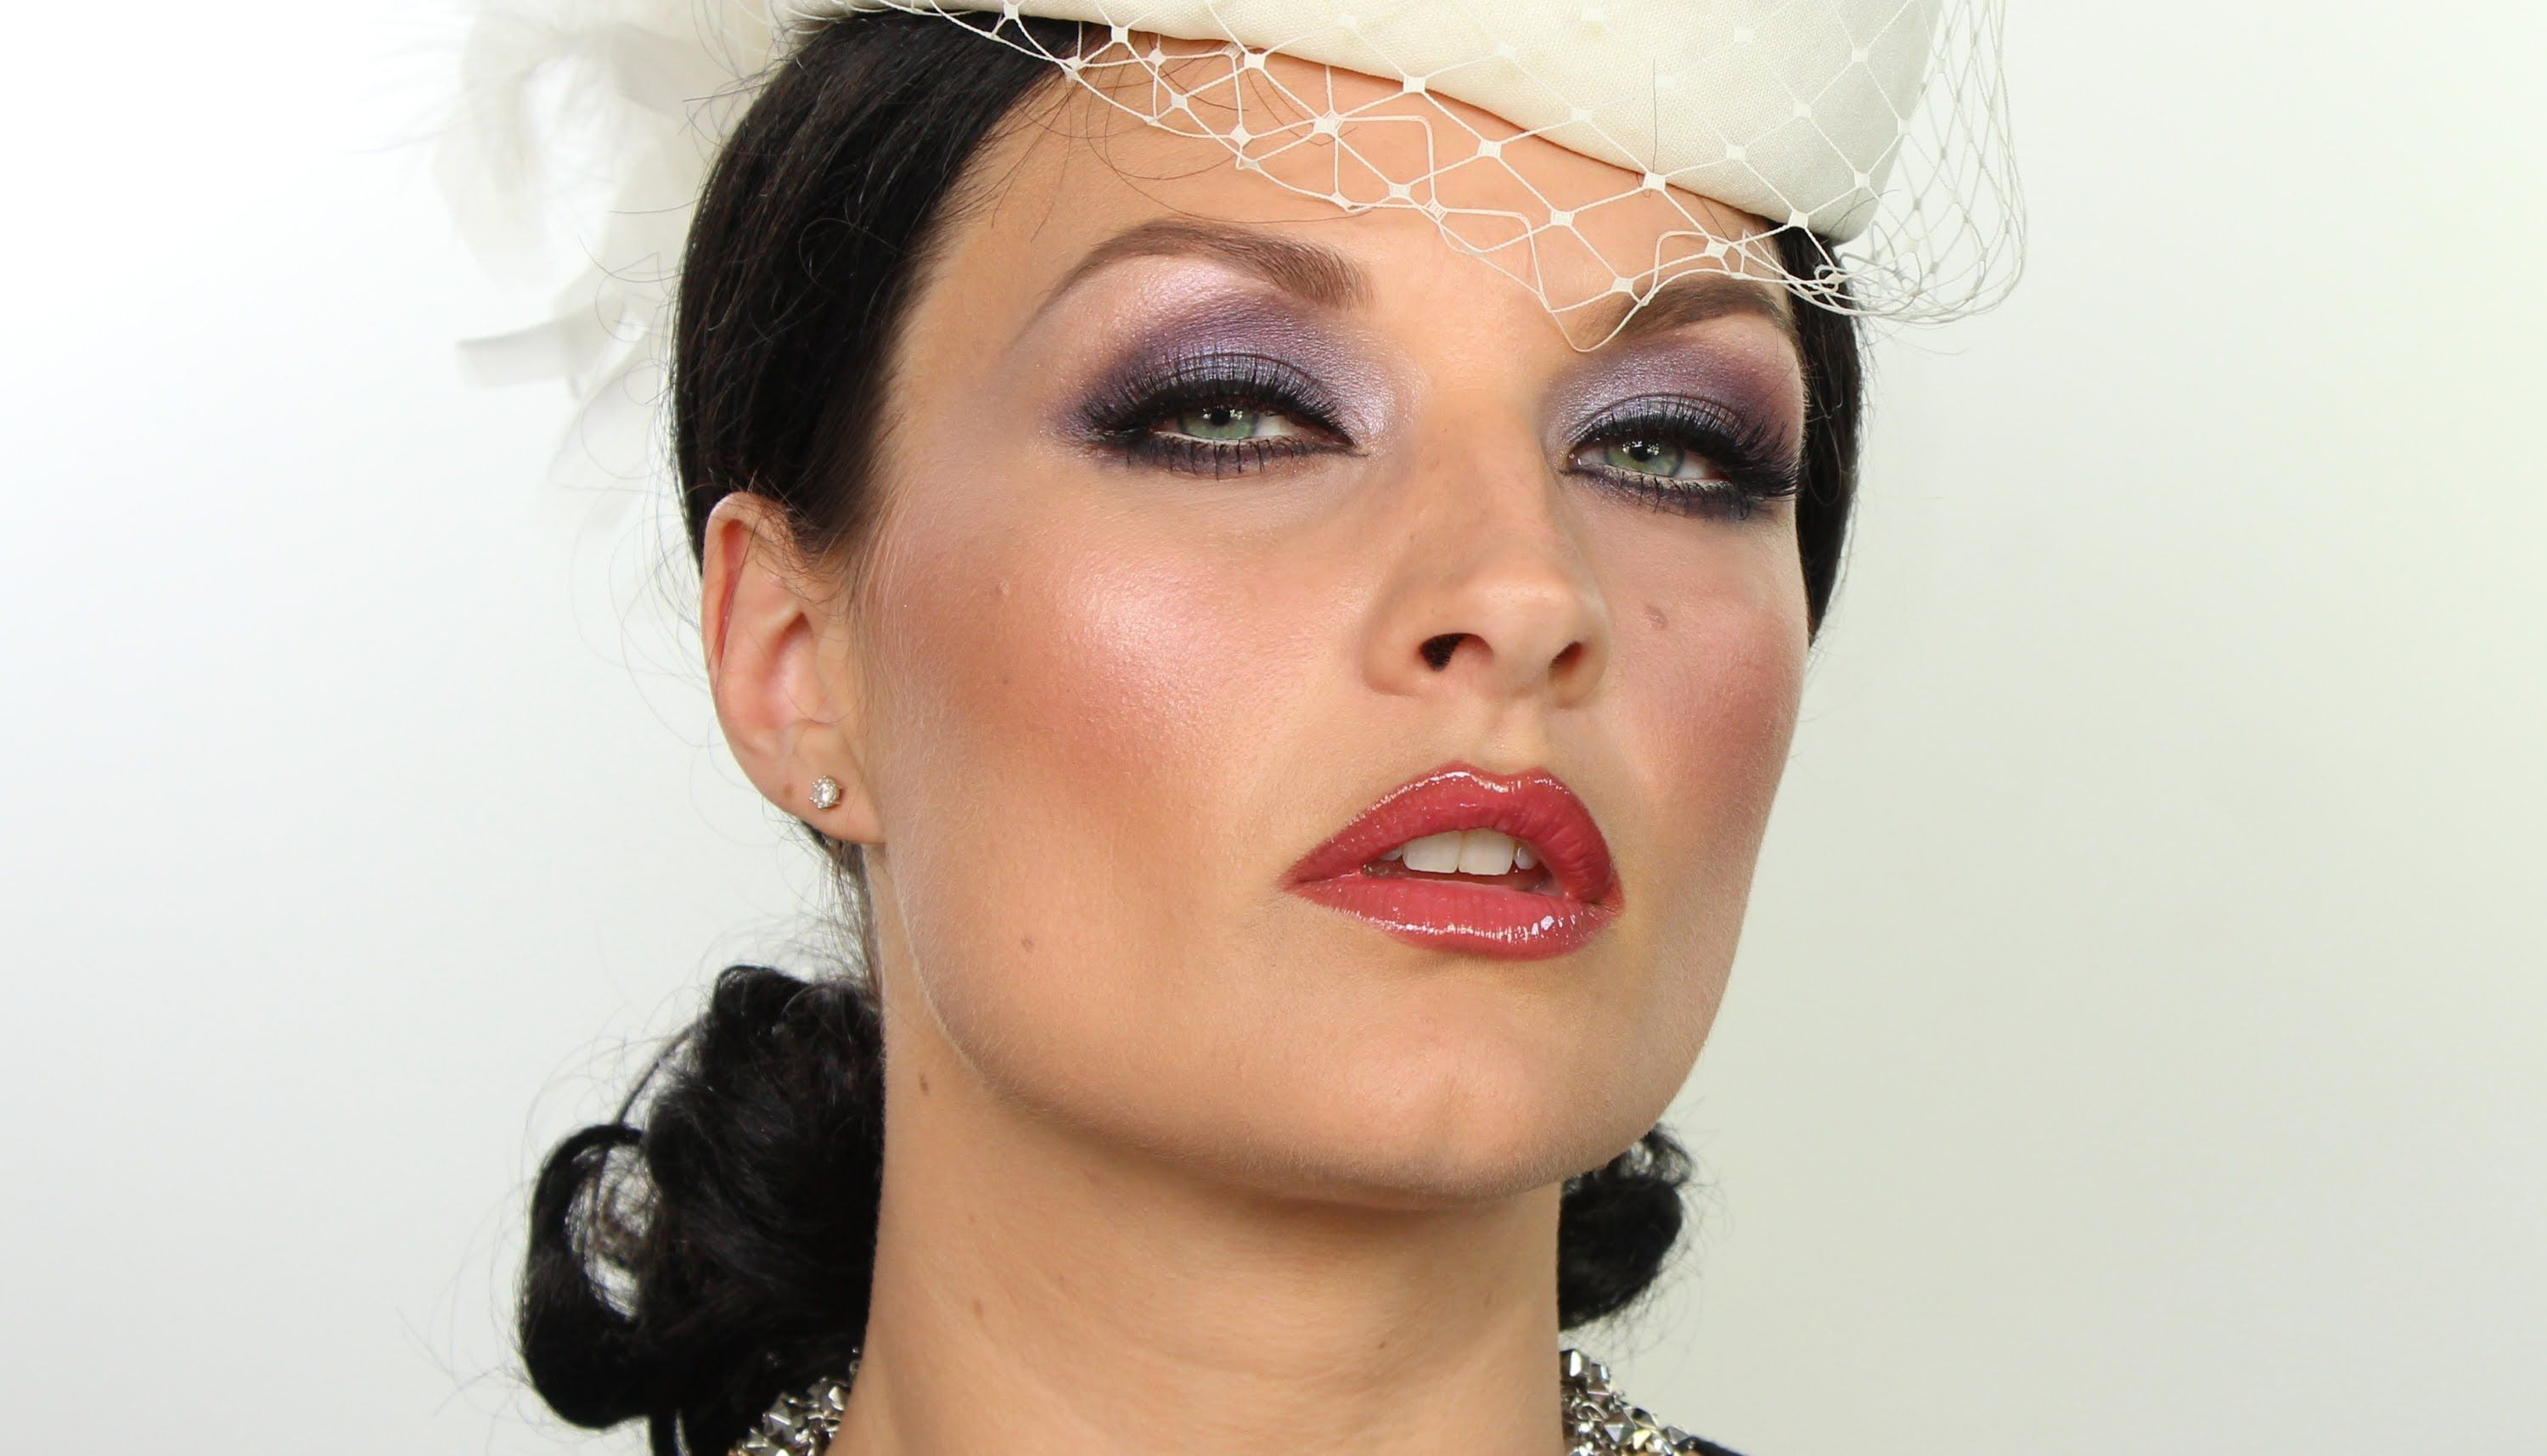 Joan Collins / Alexis Colby Dynasty Makeup Tutorial